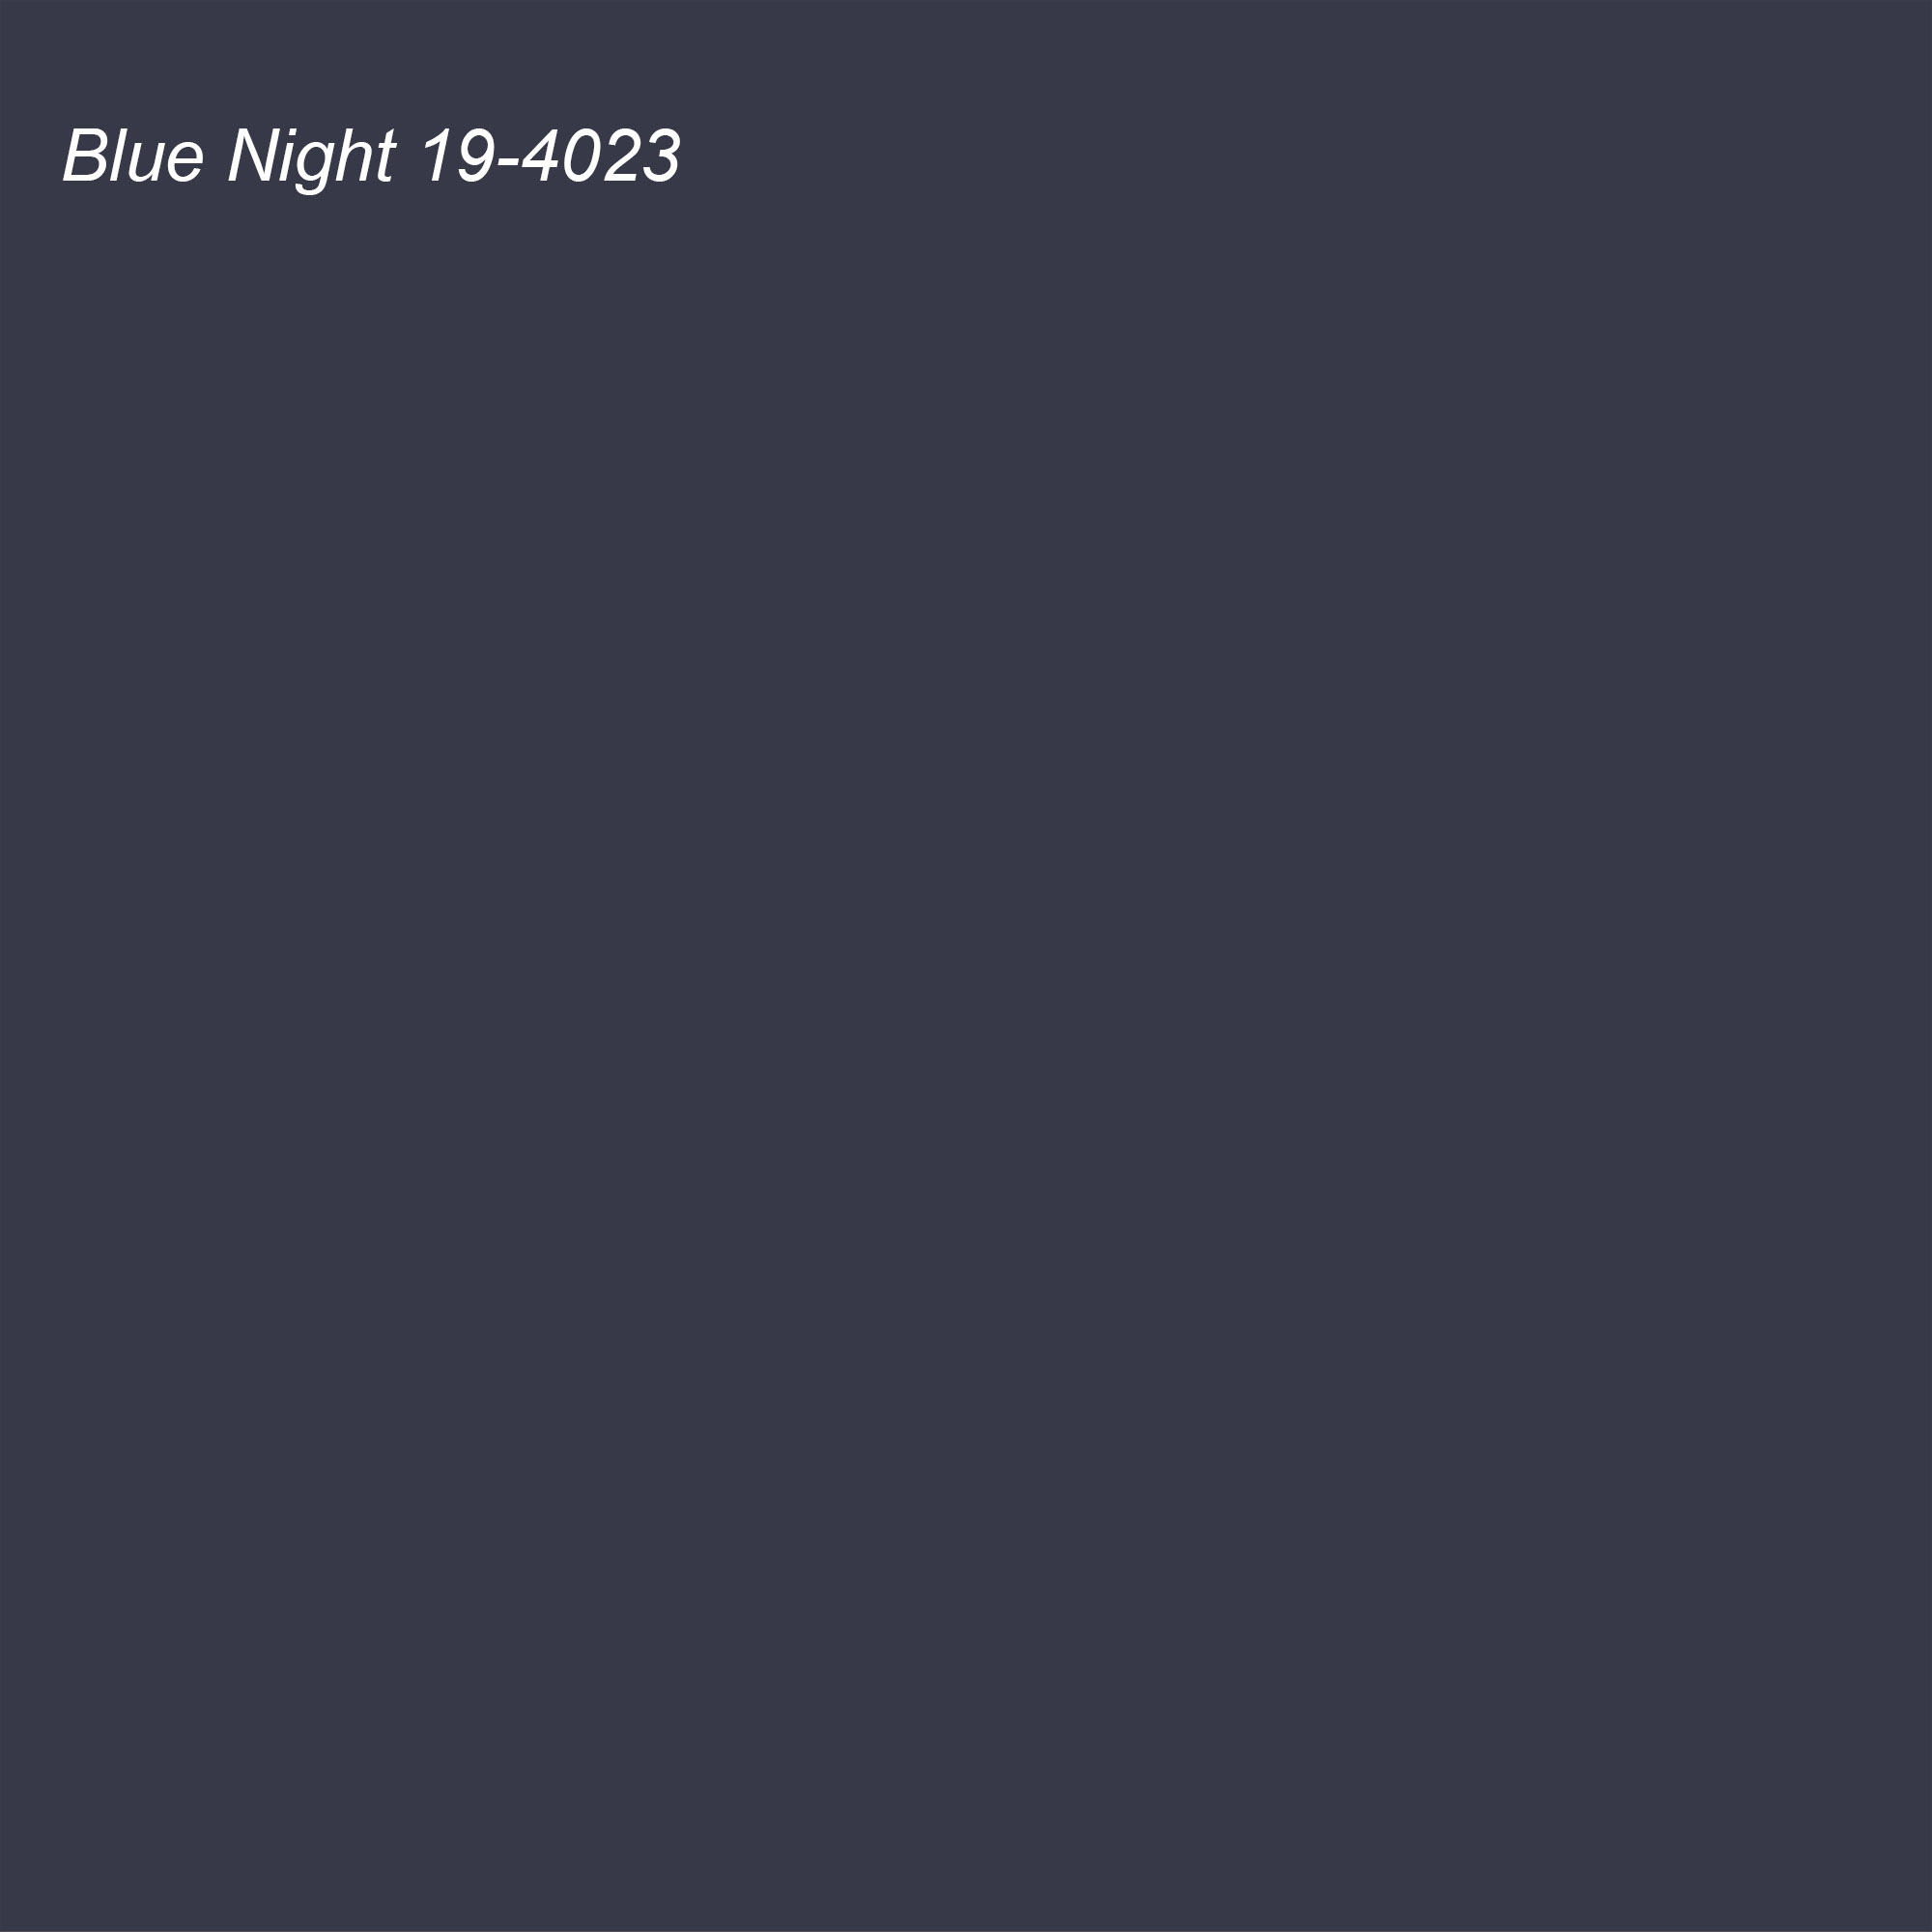 Pantone 2021 Color of the Year Suggested Accent Shade Blue Night 19-4023